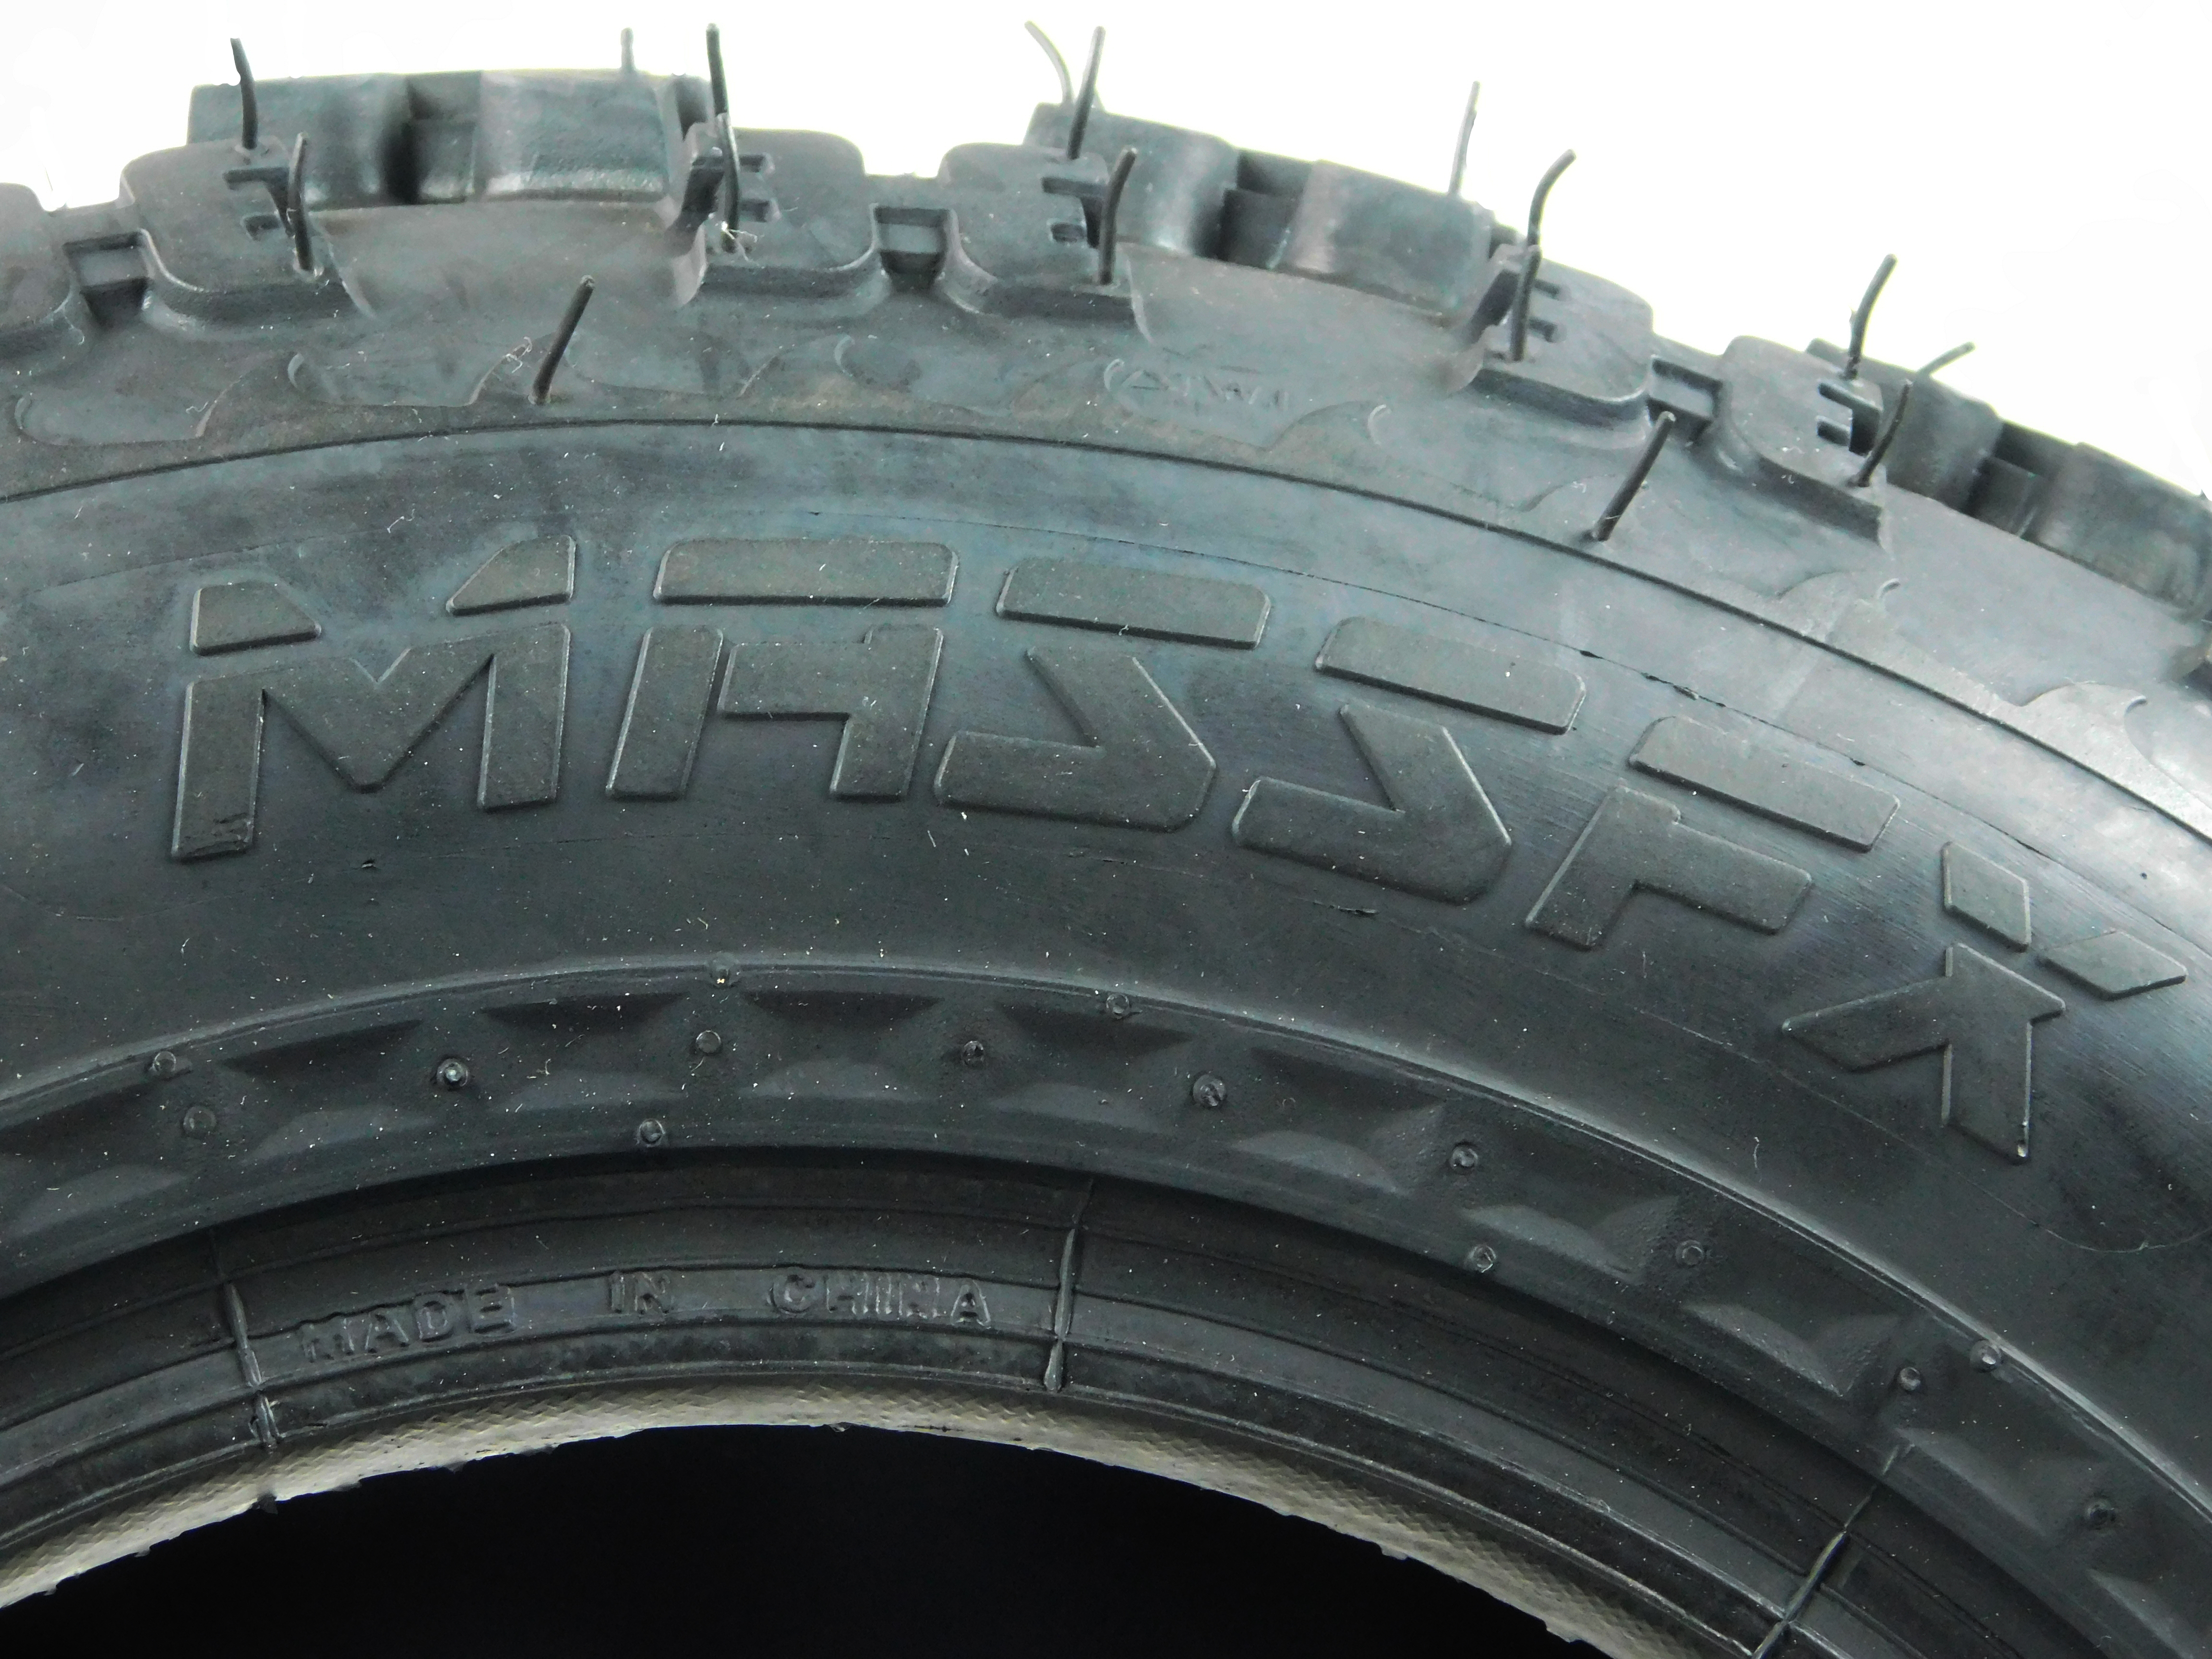 MASSFX-ATV-Single-Tire-21x7-10-Front-4Ply-image-3